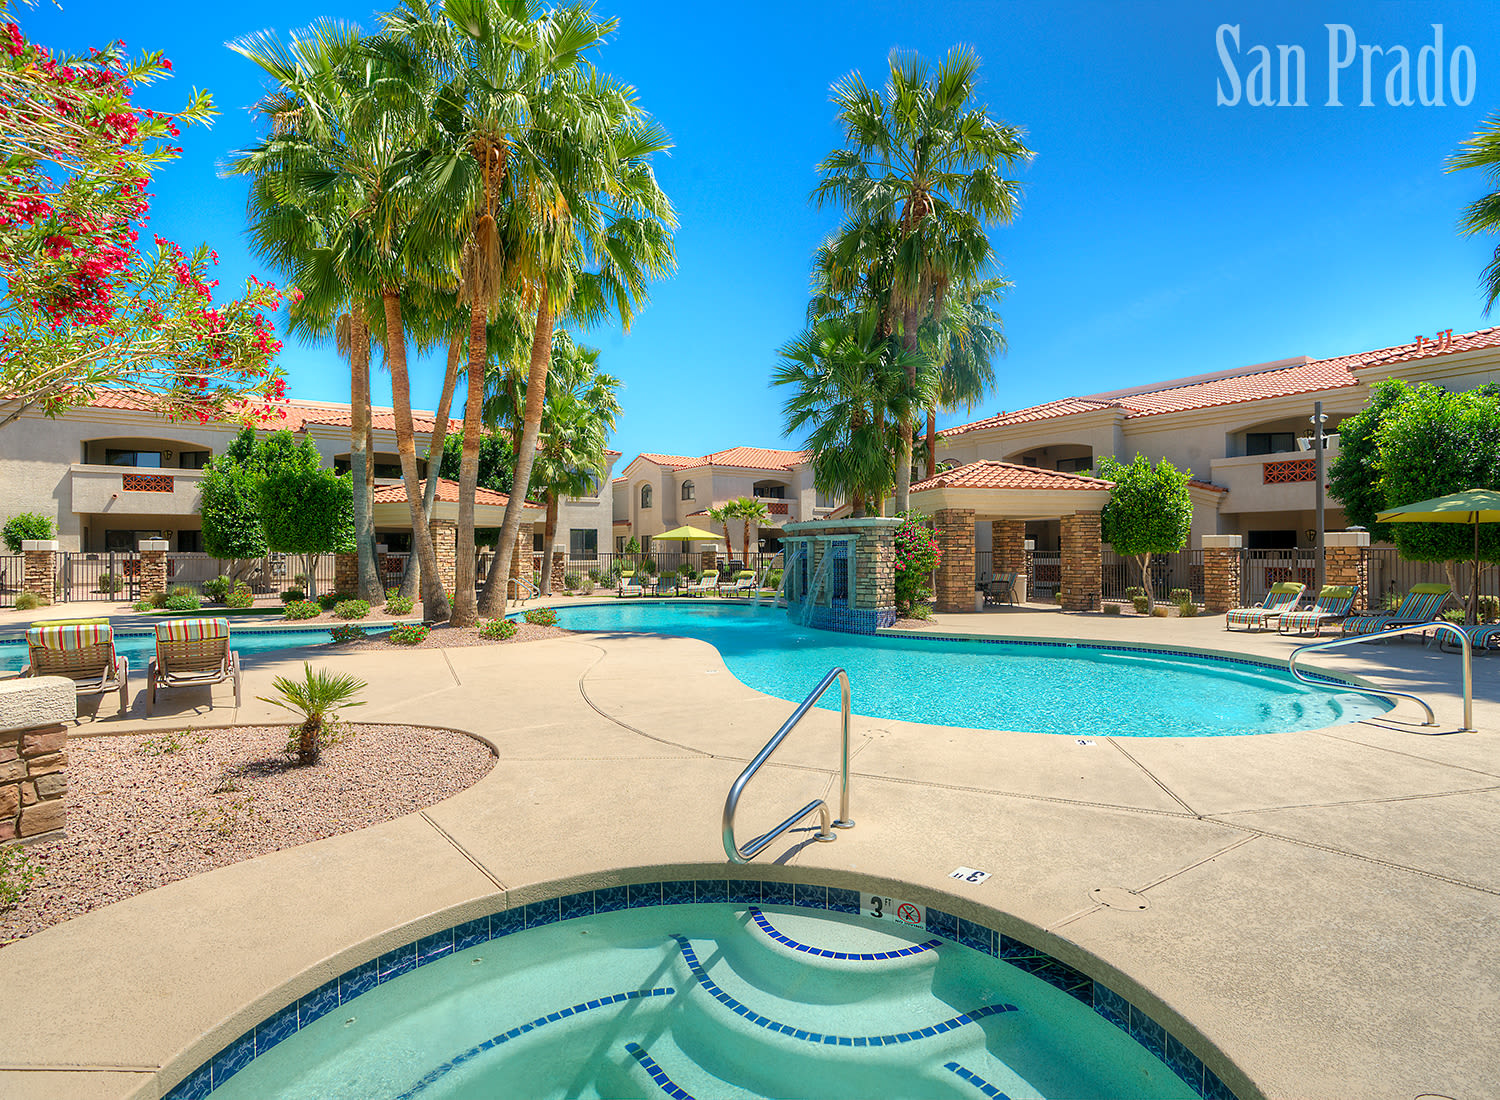 San Prado apartments in Glendale, Arizona